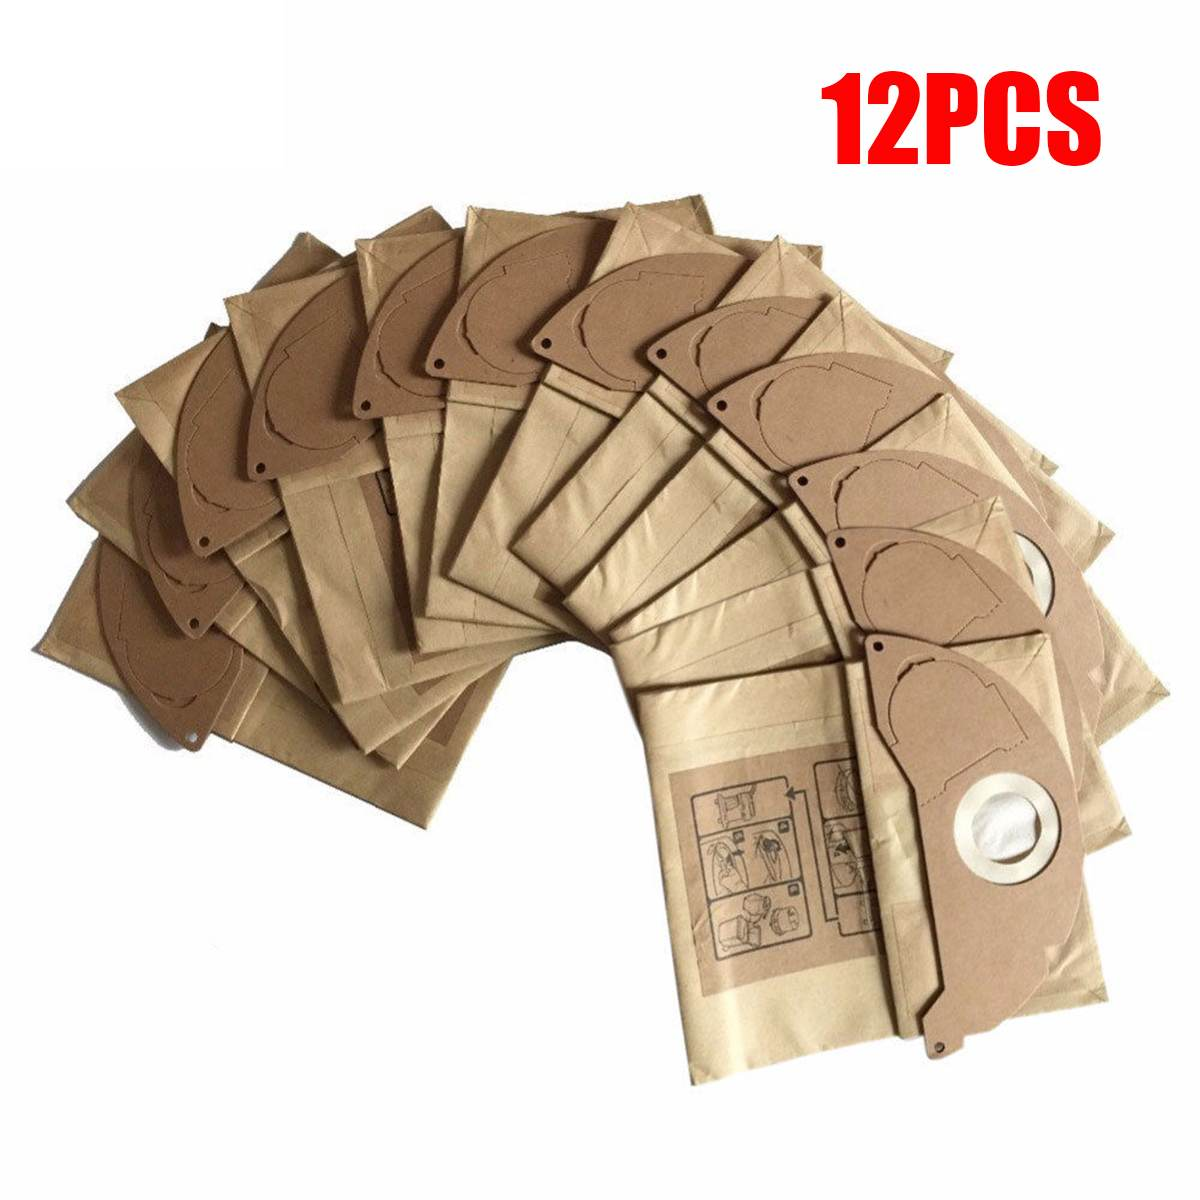 12Pcs/Set Vacuum Cleaner Bags For Karcher MV2 WD2.000-WD2.399 A2000-A2099 A2054 Vacuum Cleaner Home Appliance Parts Kit New